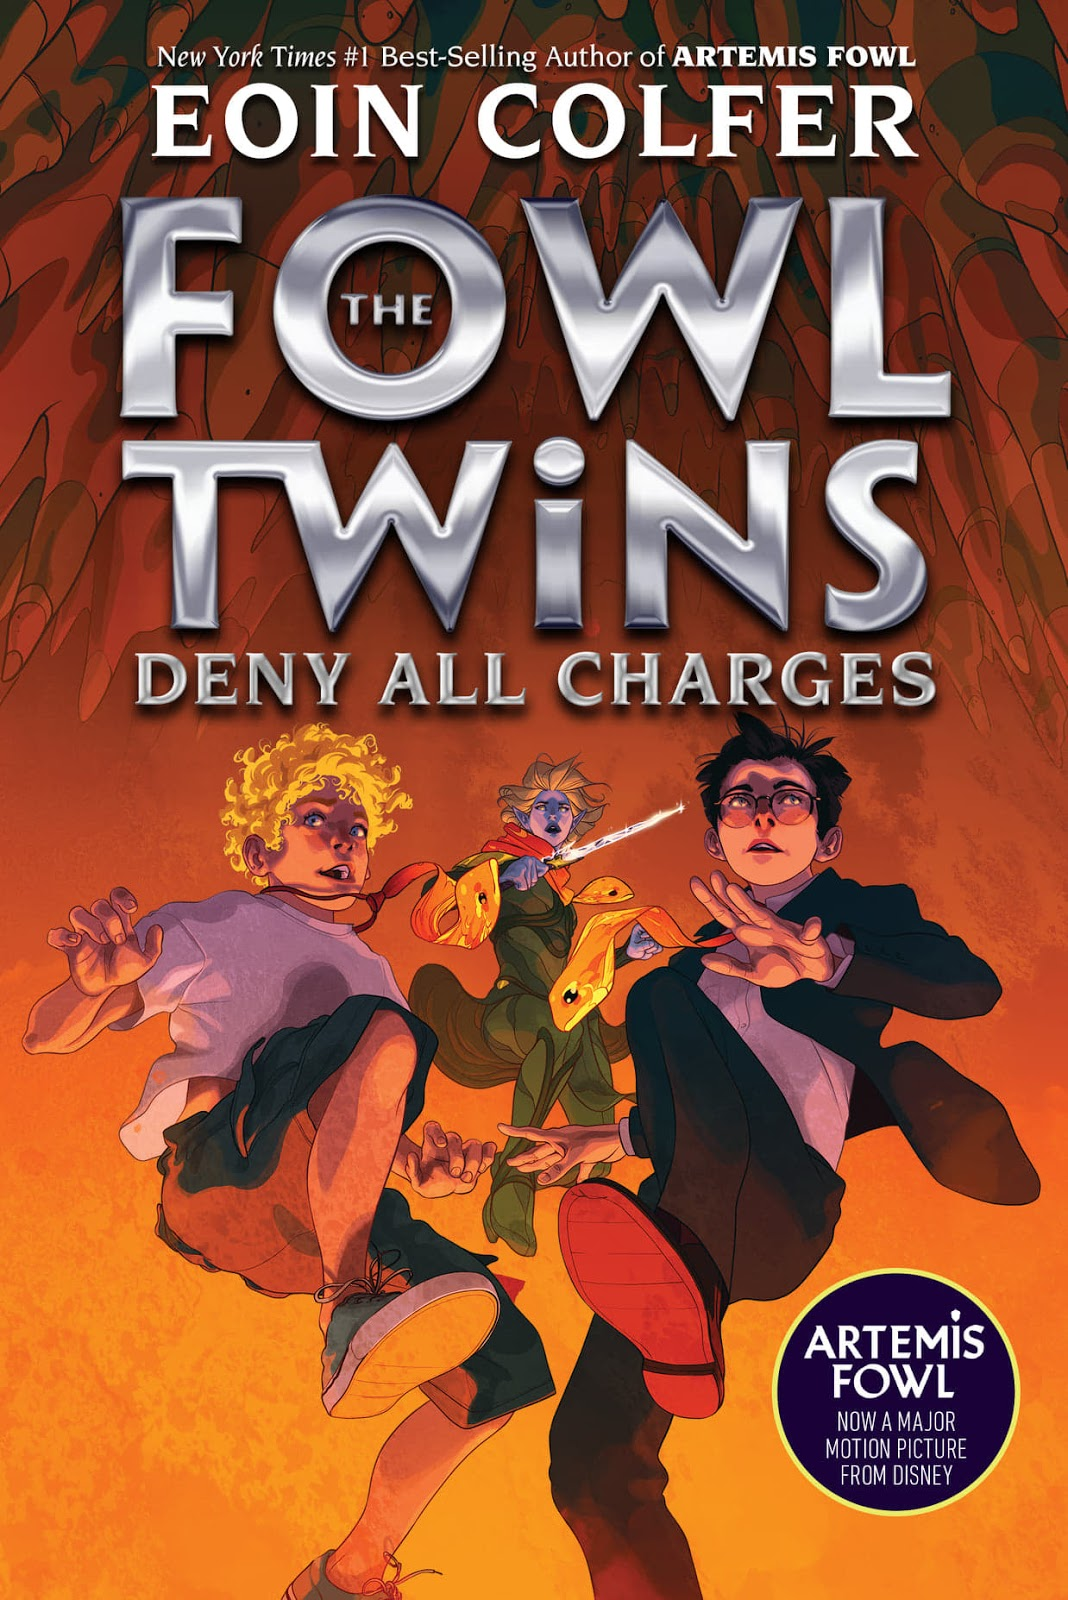 The Fowl Twins Deny All Charges by Eoin Colfer